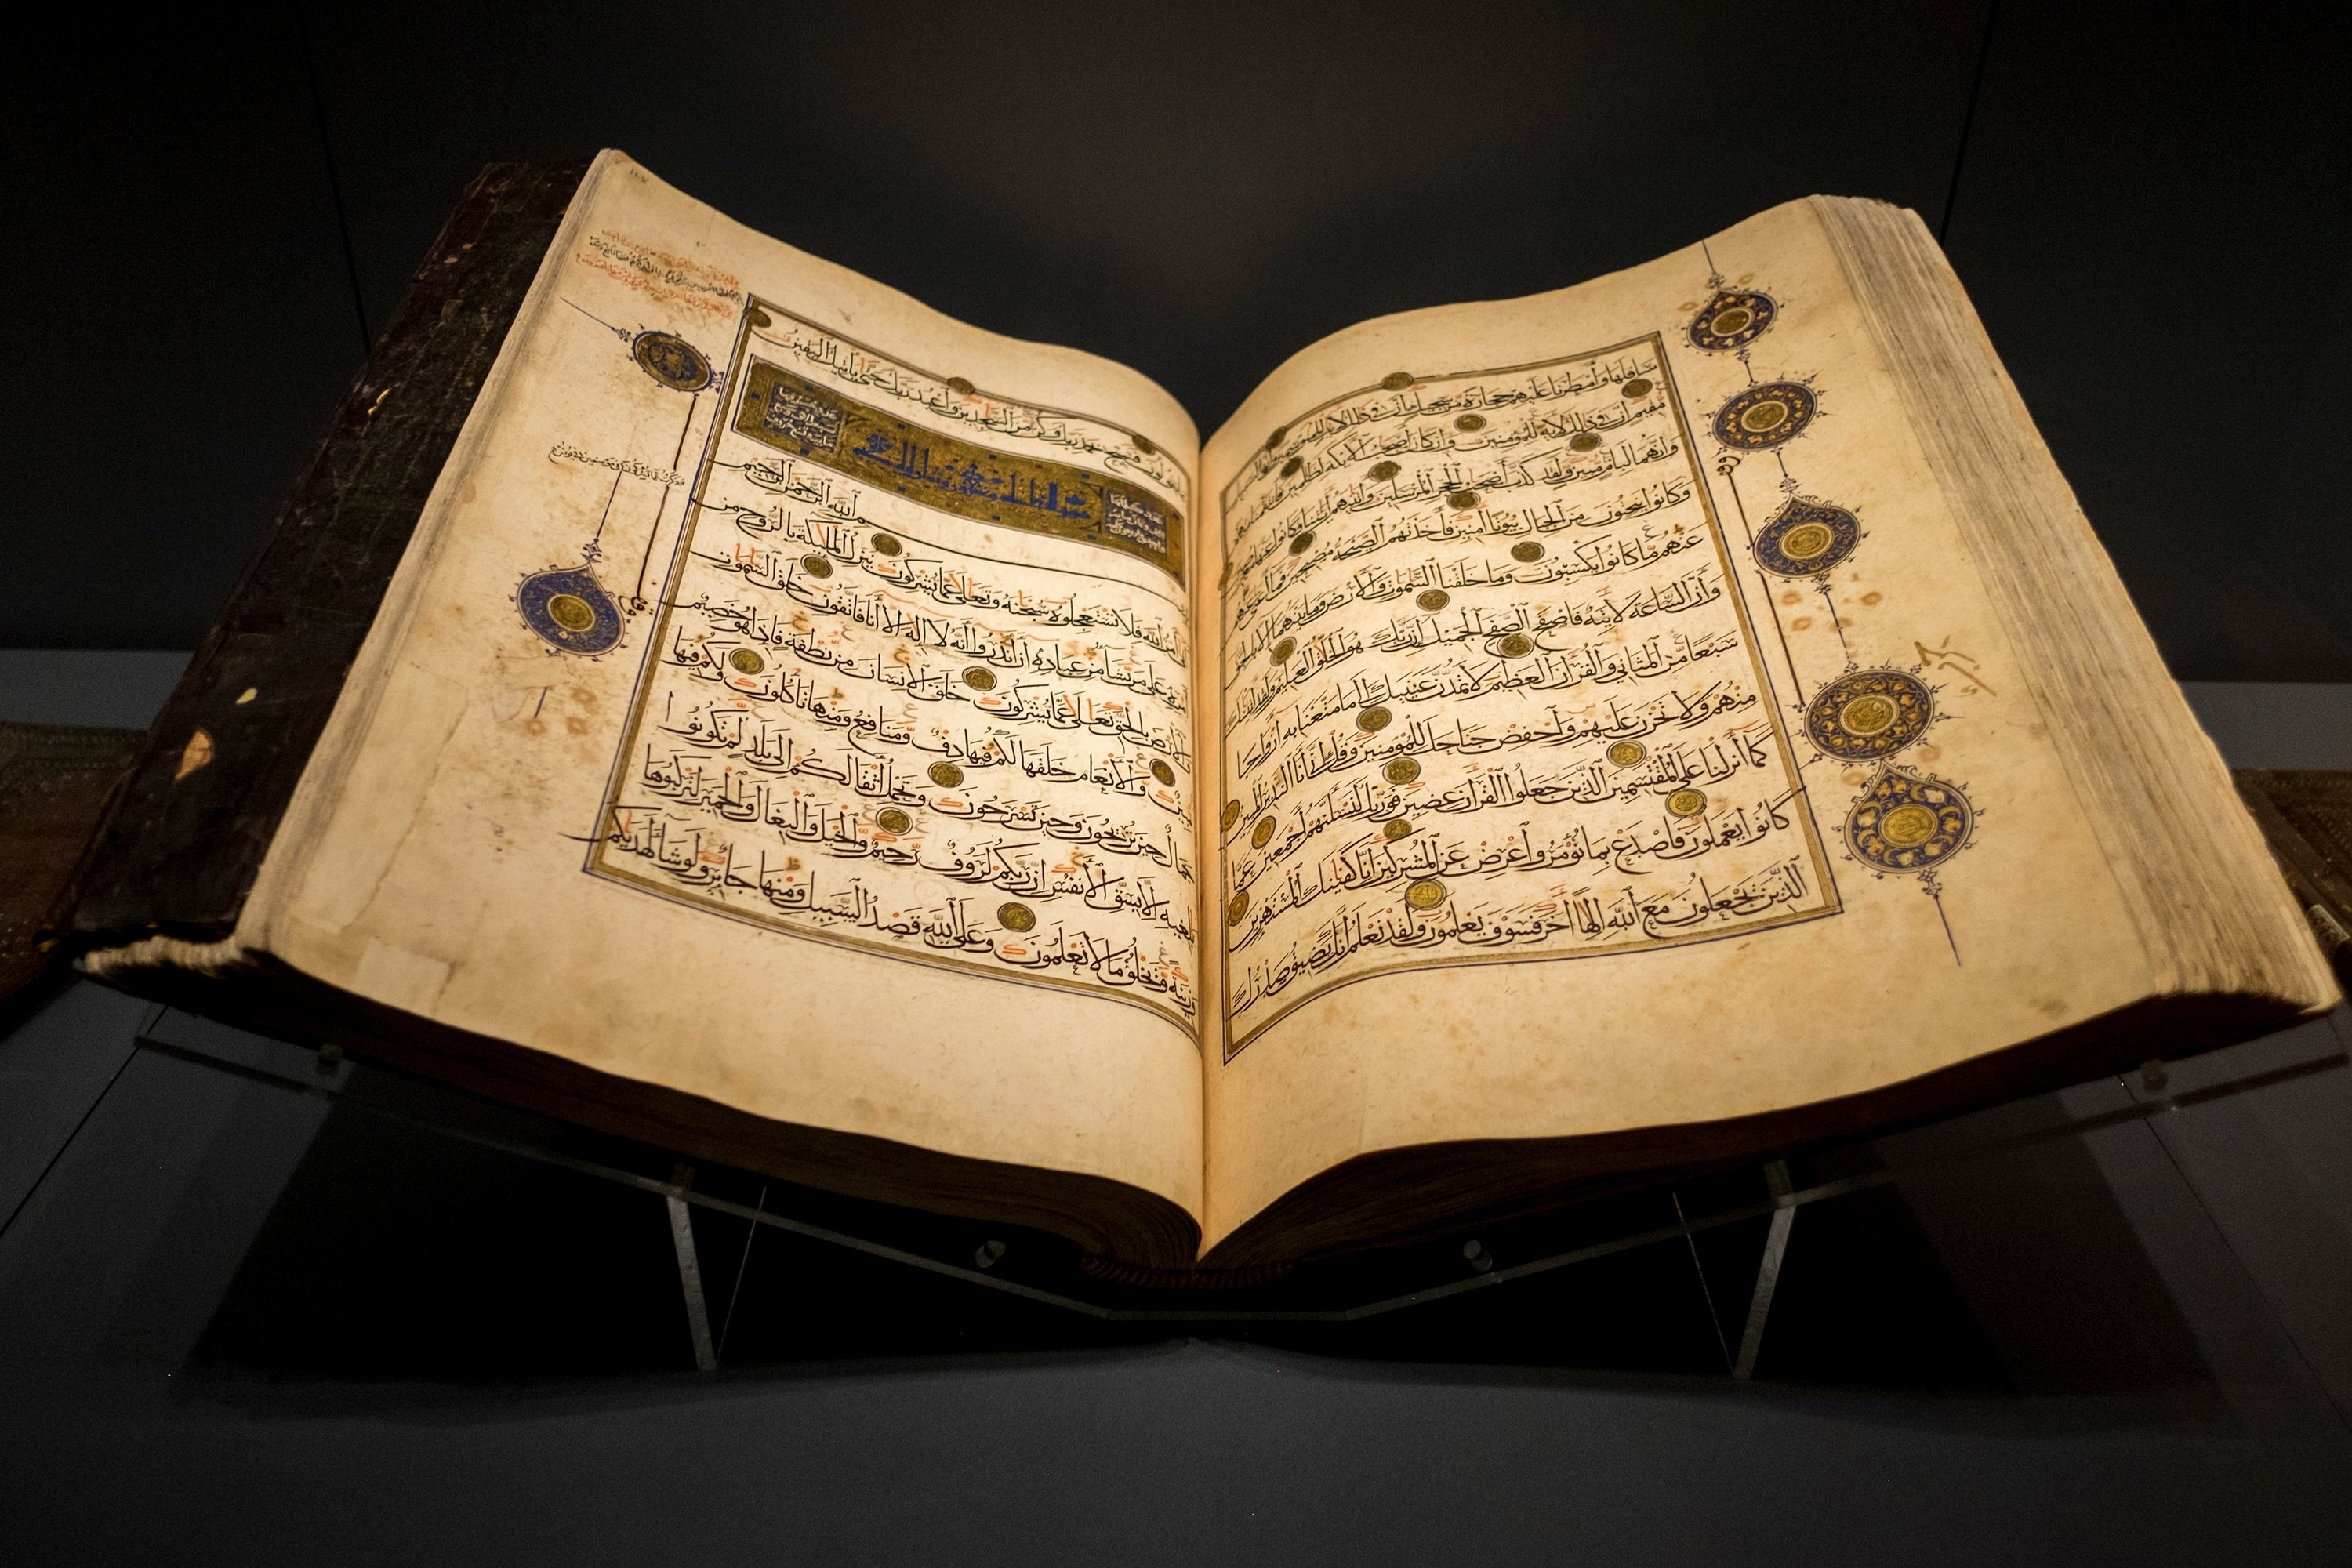 A Quran from the Mamluk period at the Museum of Turkish and Islamic Arts, April, 2017. (SHUTTERSTOCK PHOTO)